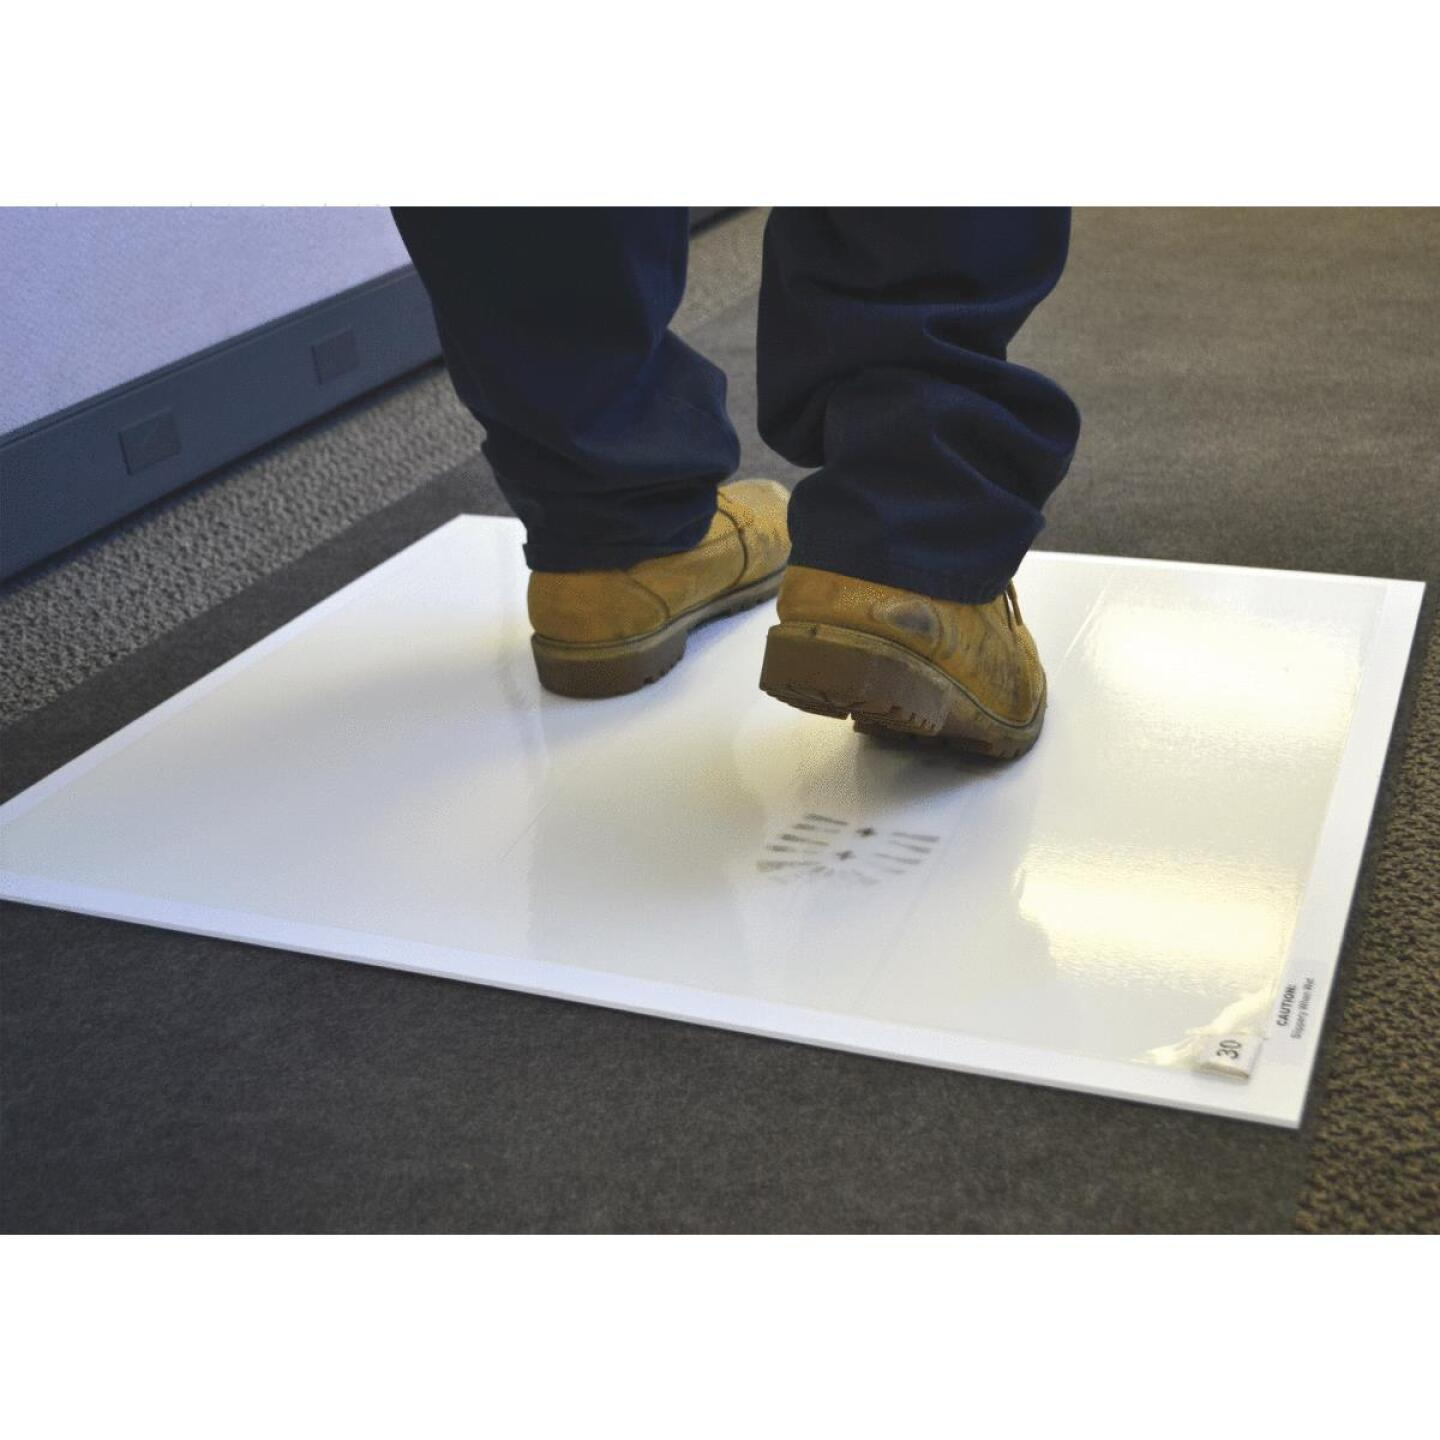 Surface Shields Step N Peel Clean Mat 25.5 In. x 31.5 In. Floor Protector Image 3